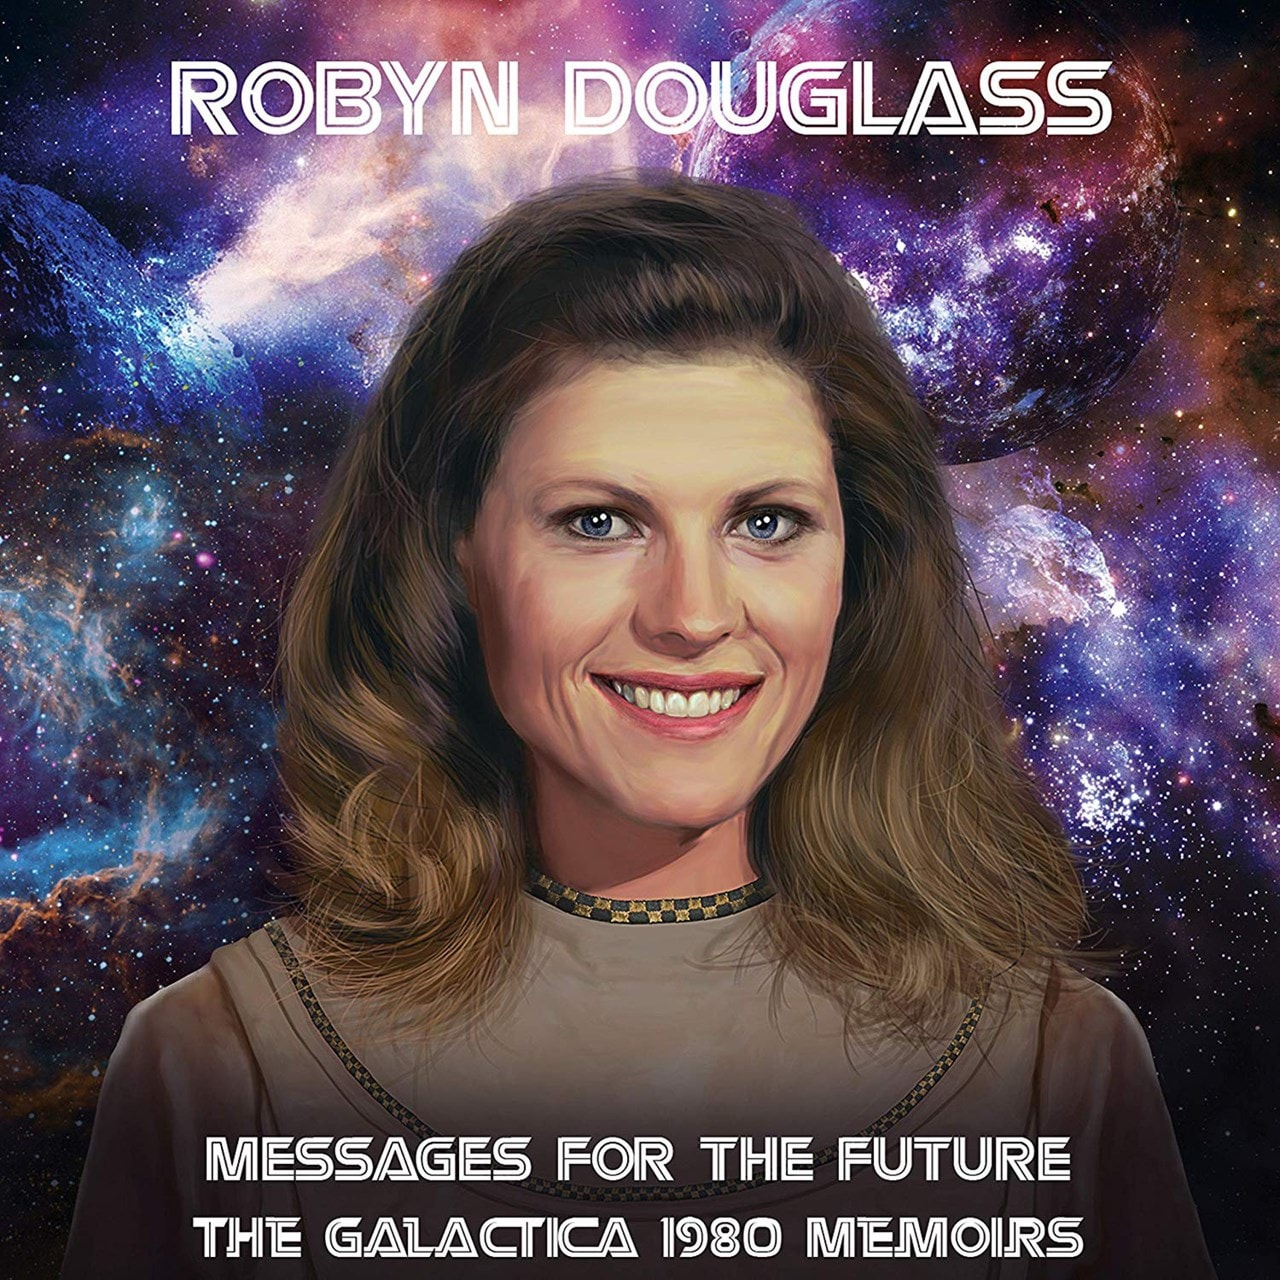 Messages for the Future: The Galactica 1980 Memoirs - 1